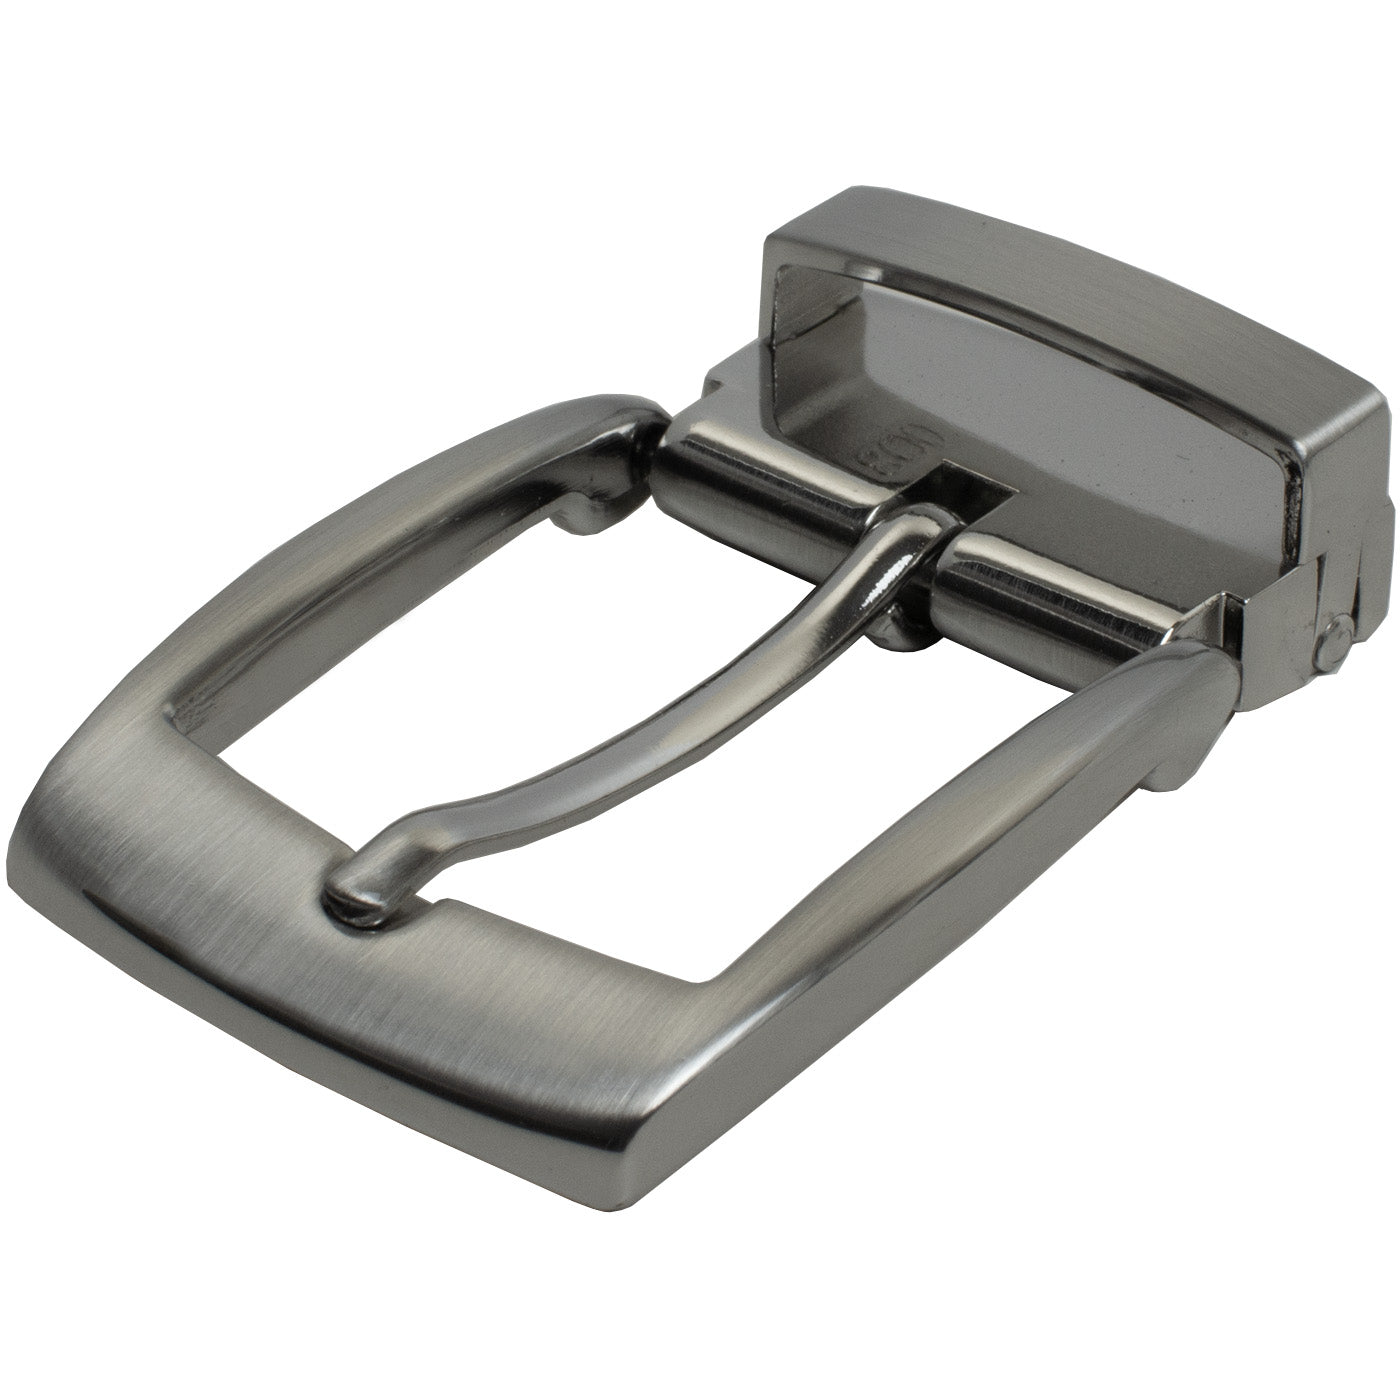 "Clamp Pin Buckle (1⅜"") by Nickel Smart - athenaallergy.com, nickel free, hypoallergenic"